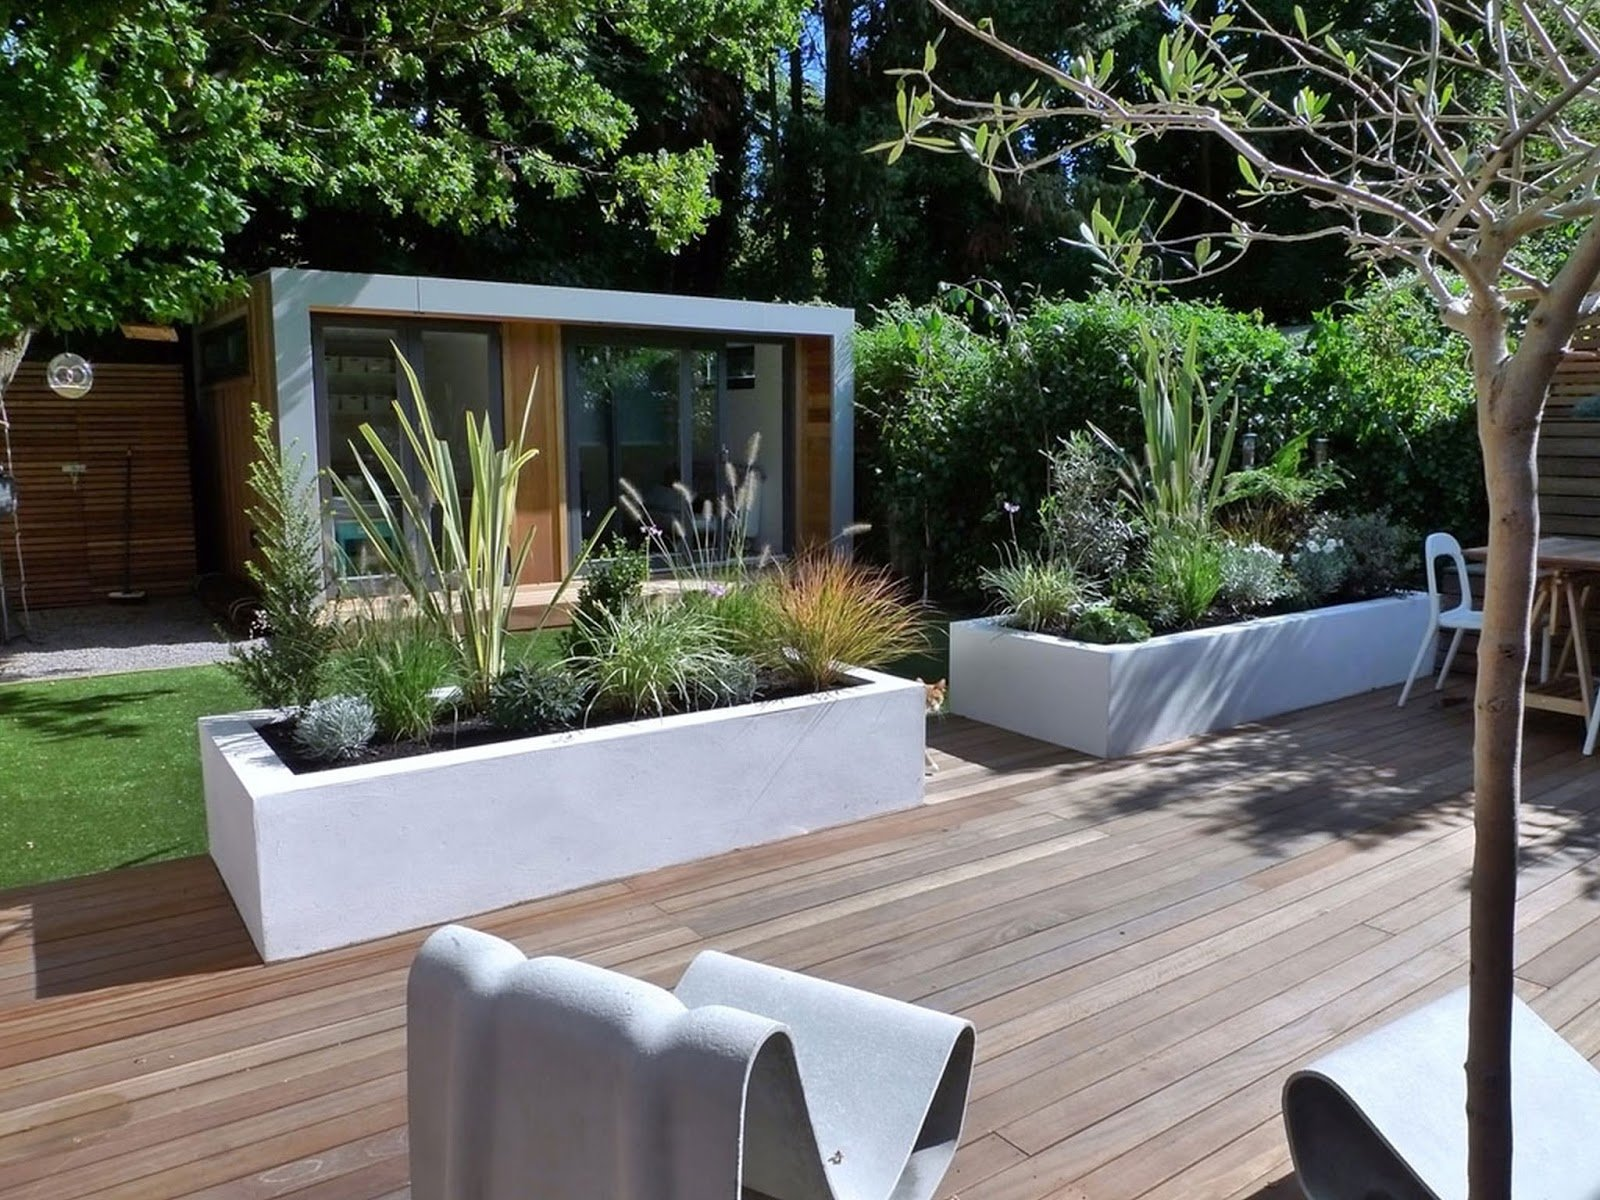 10 Nice Mid Century Modern Landscape Design Ideas mid century modern landscape design ideas find this pin and more on 2021